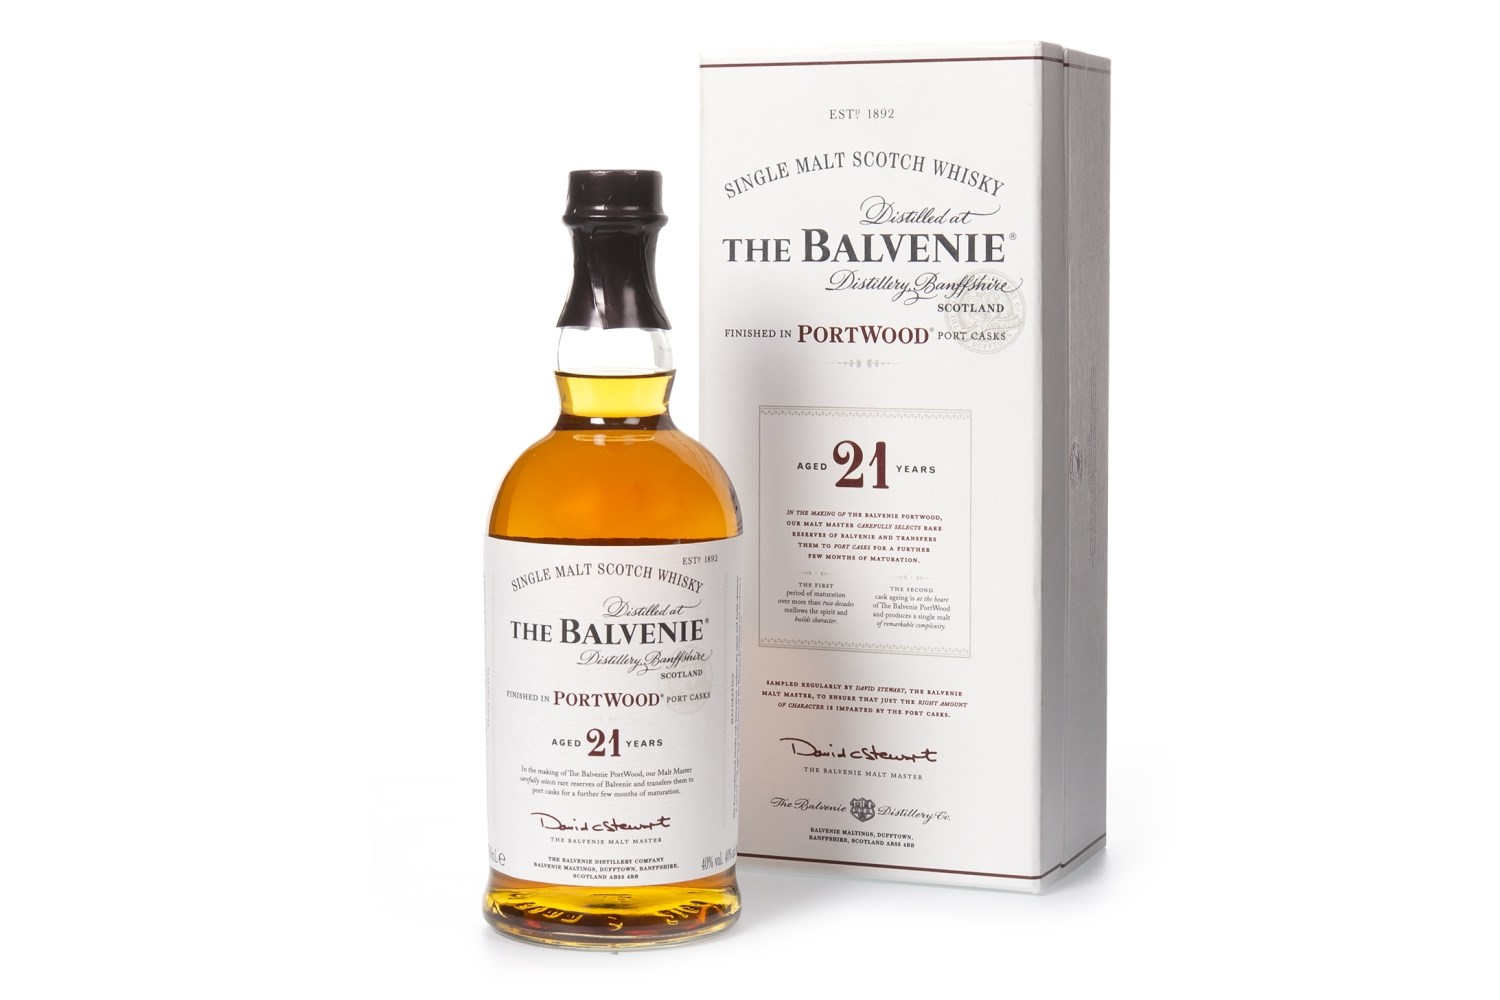 Lot 1046 - BALVENIE PORTWOOD AGED 21 YEARS